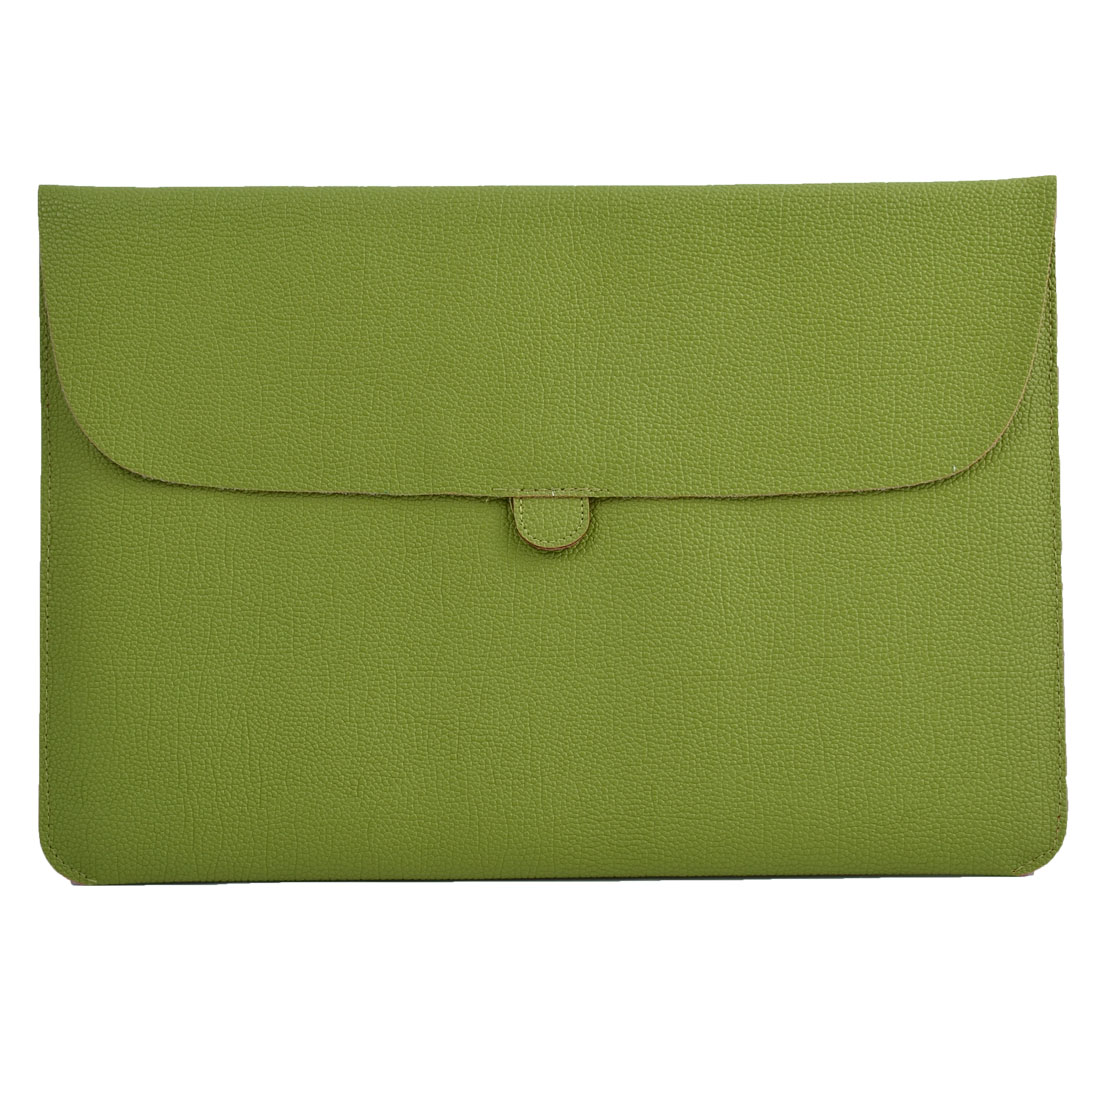 Carrying Laptop Case Pouch Envelope Shape Tablet Sleeve Bag Lawn Green for Macbook 13.3""